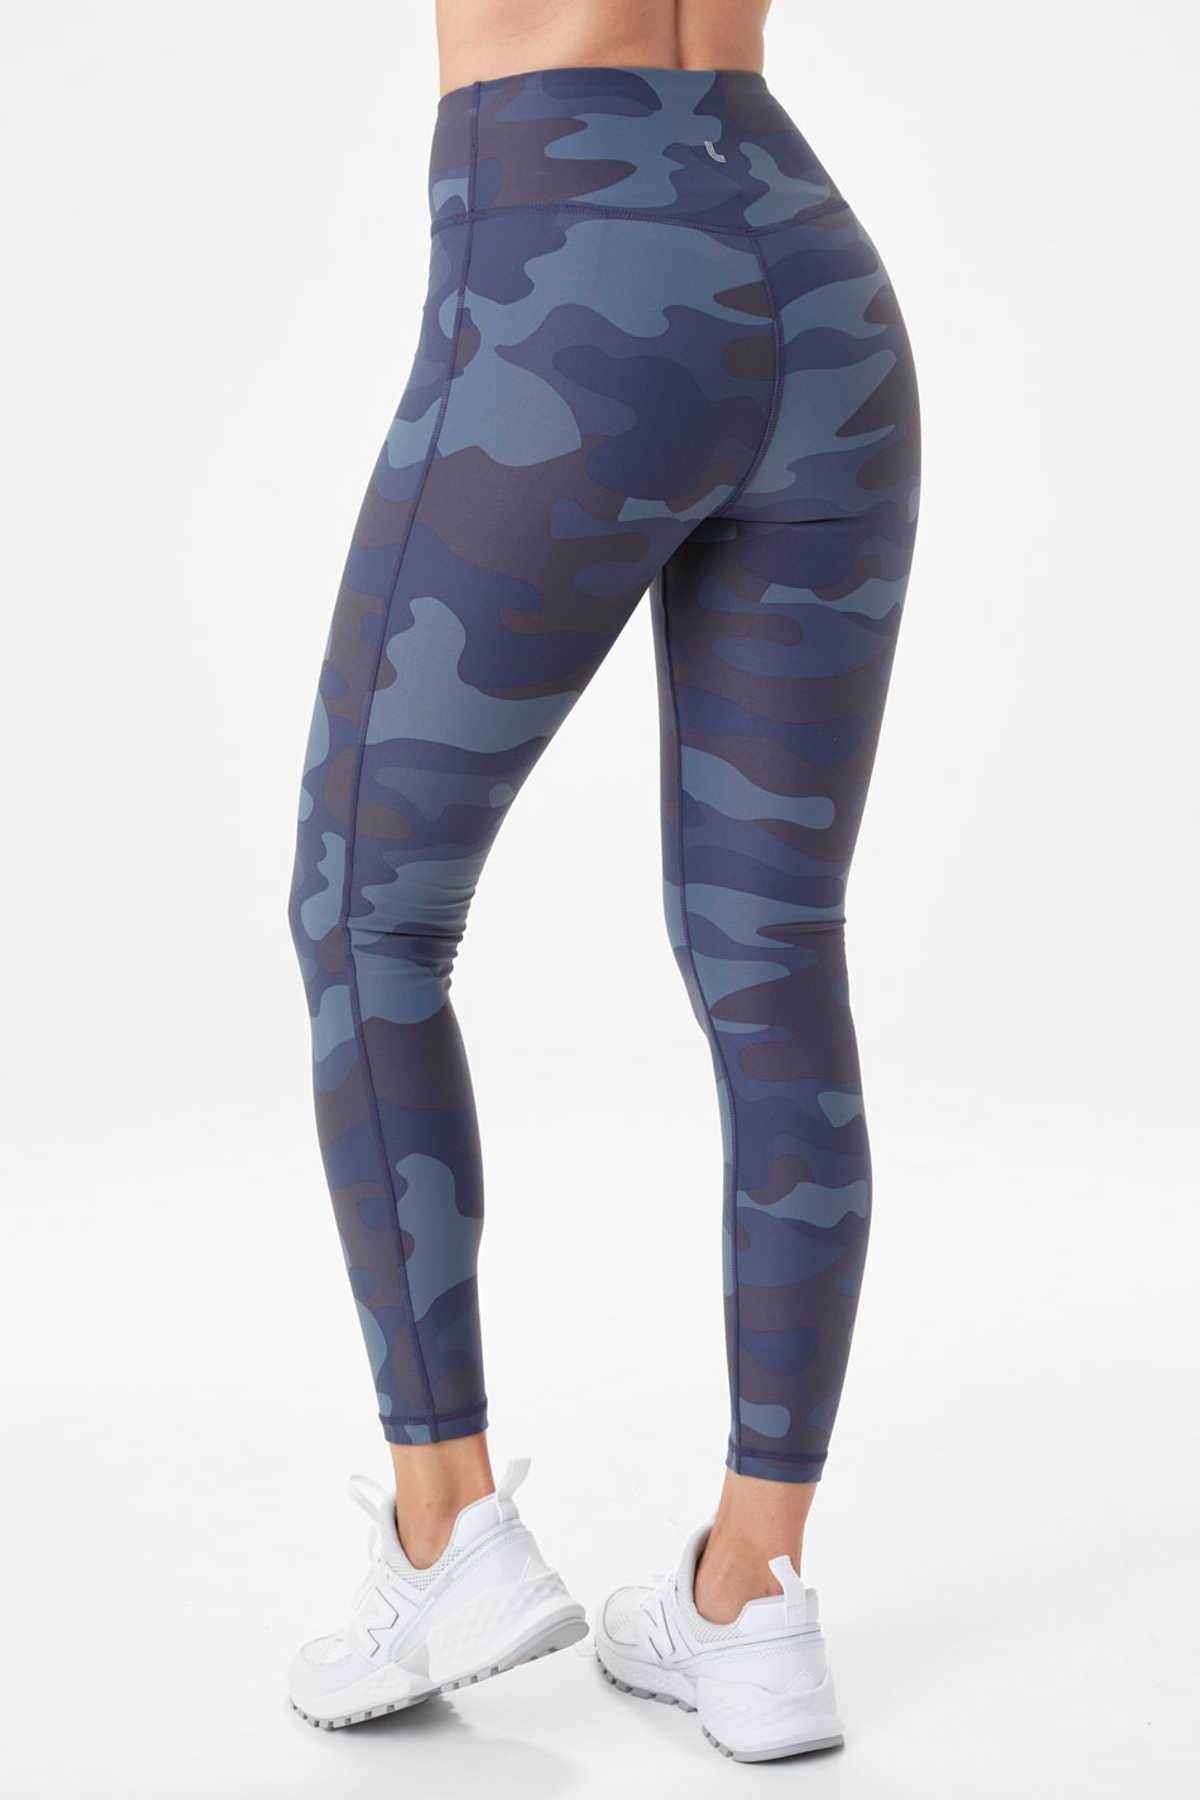 Lole Eliana High Waisted Leggings